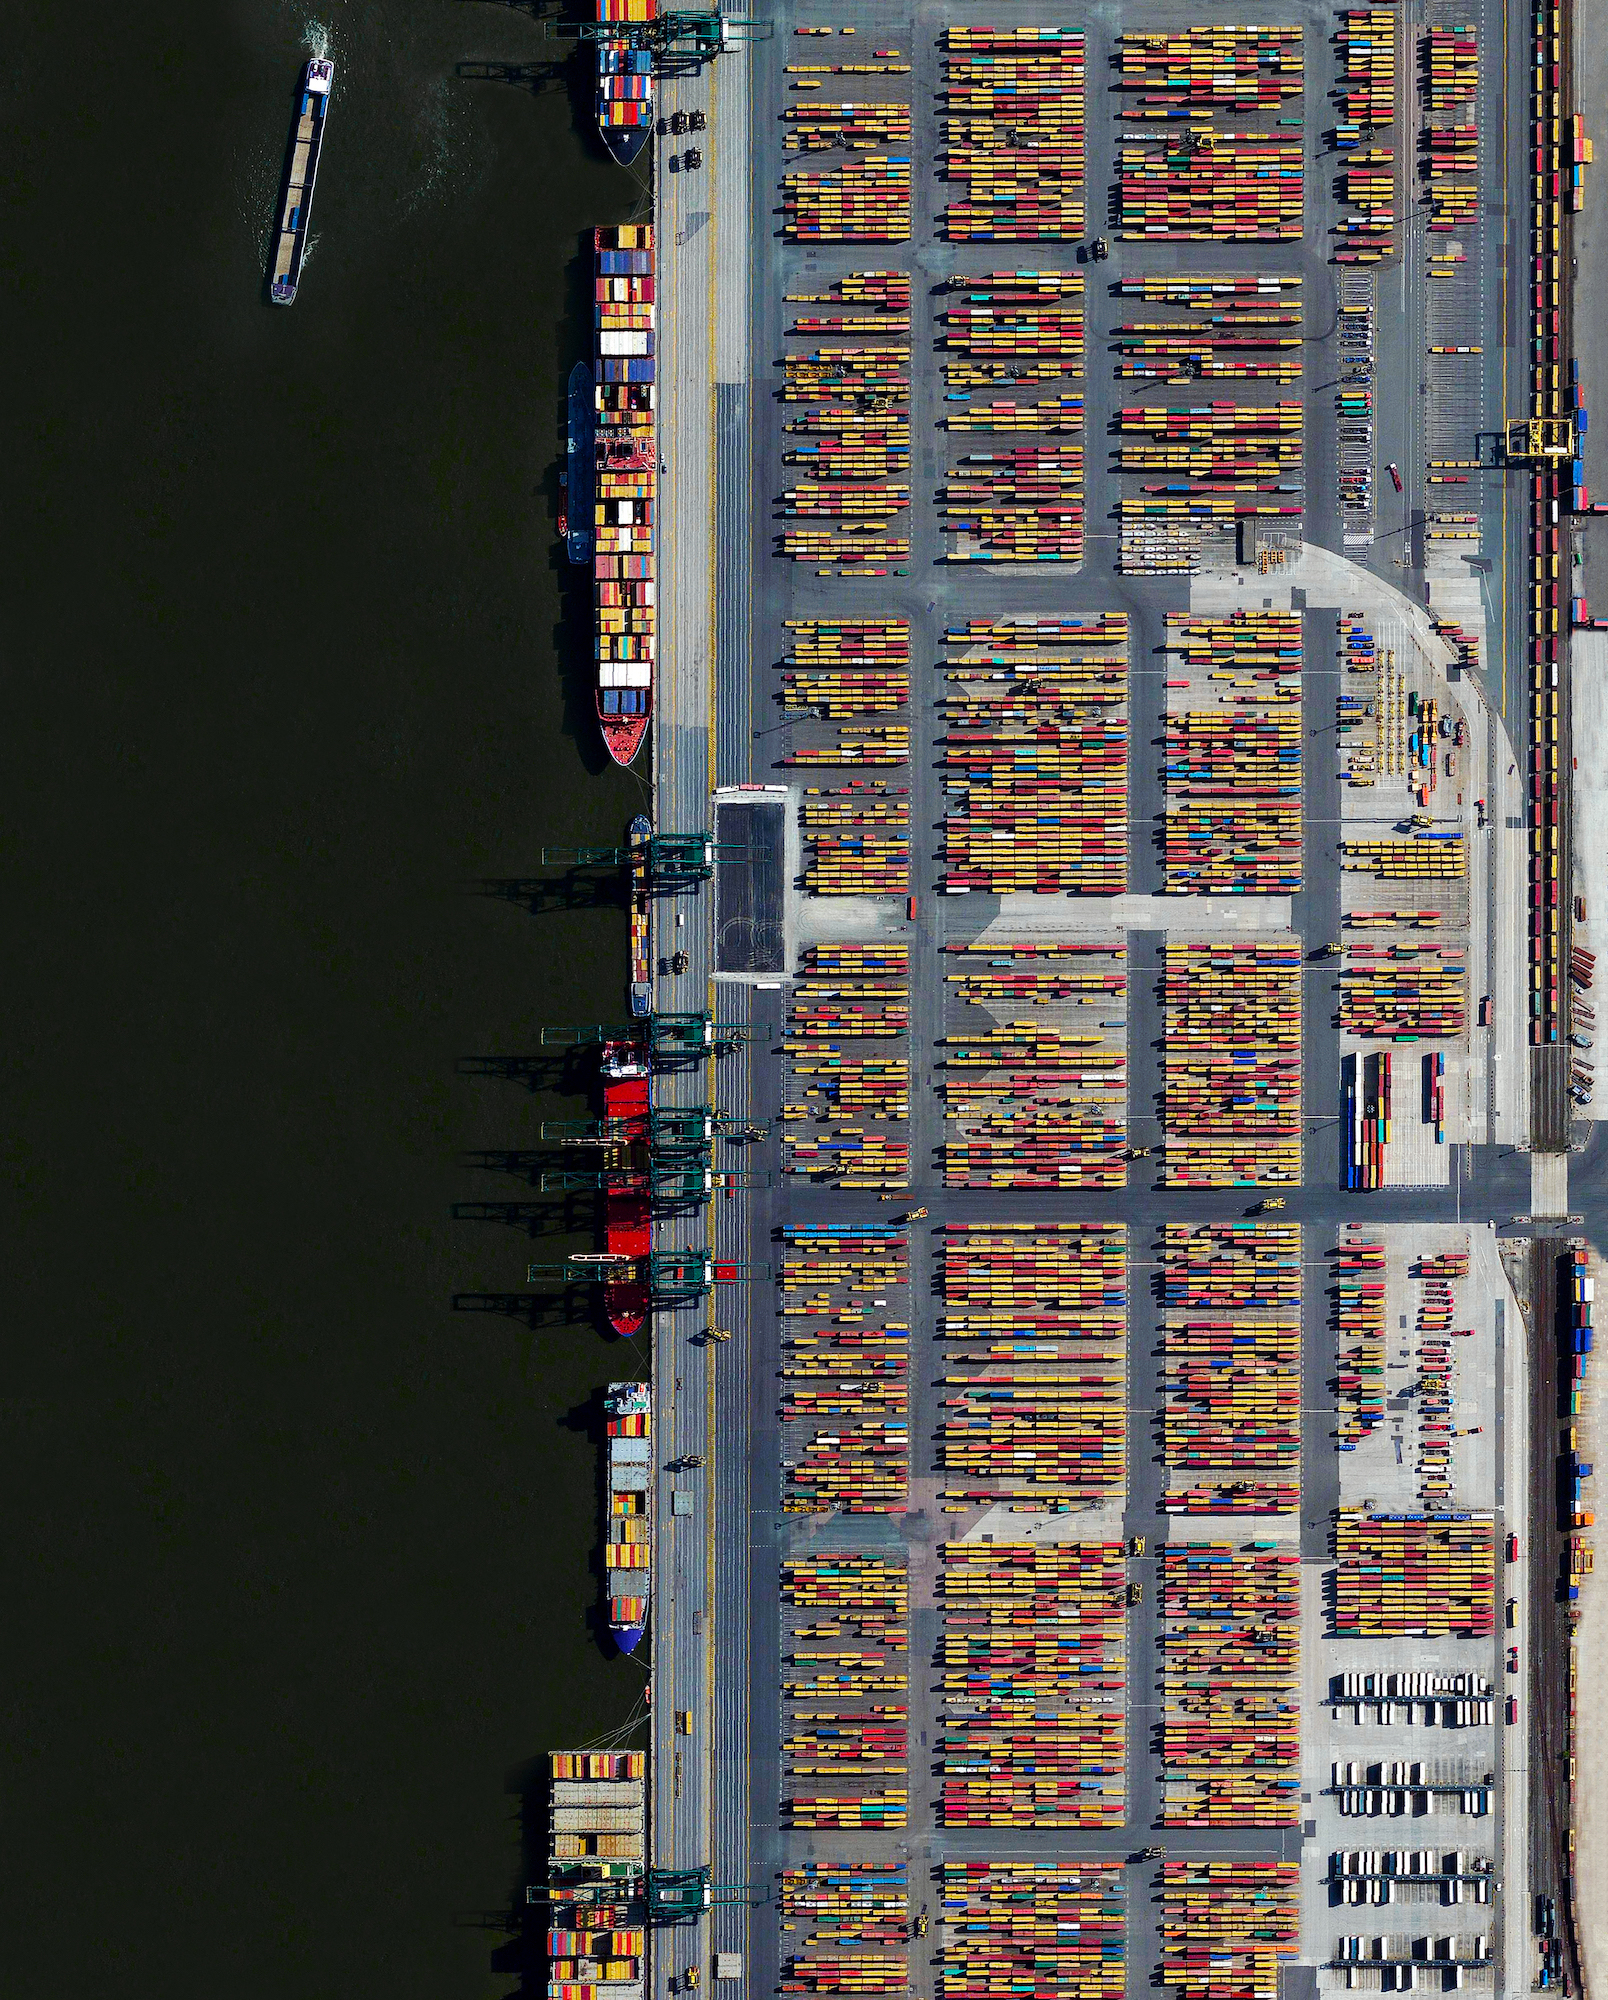 The Port of Antwerp in Belgium is the second largest seaport in Europe. In one year alone the facility handles more than 71,000 vessels and 314 million tons of cargo. That weight is roughly equal to 68% of the mass of all living humans on the planet.    51.322990, 4.326734